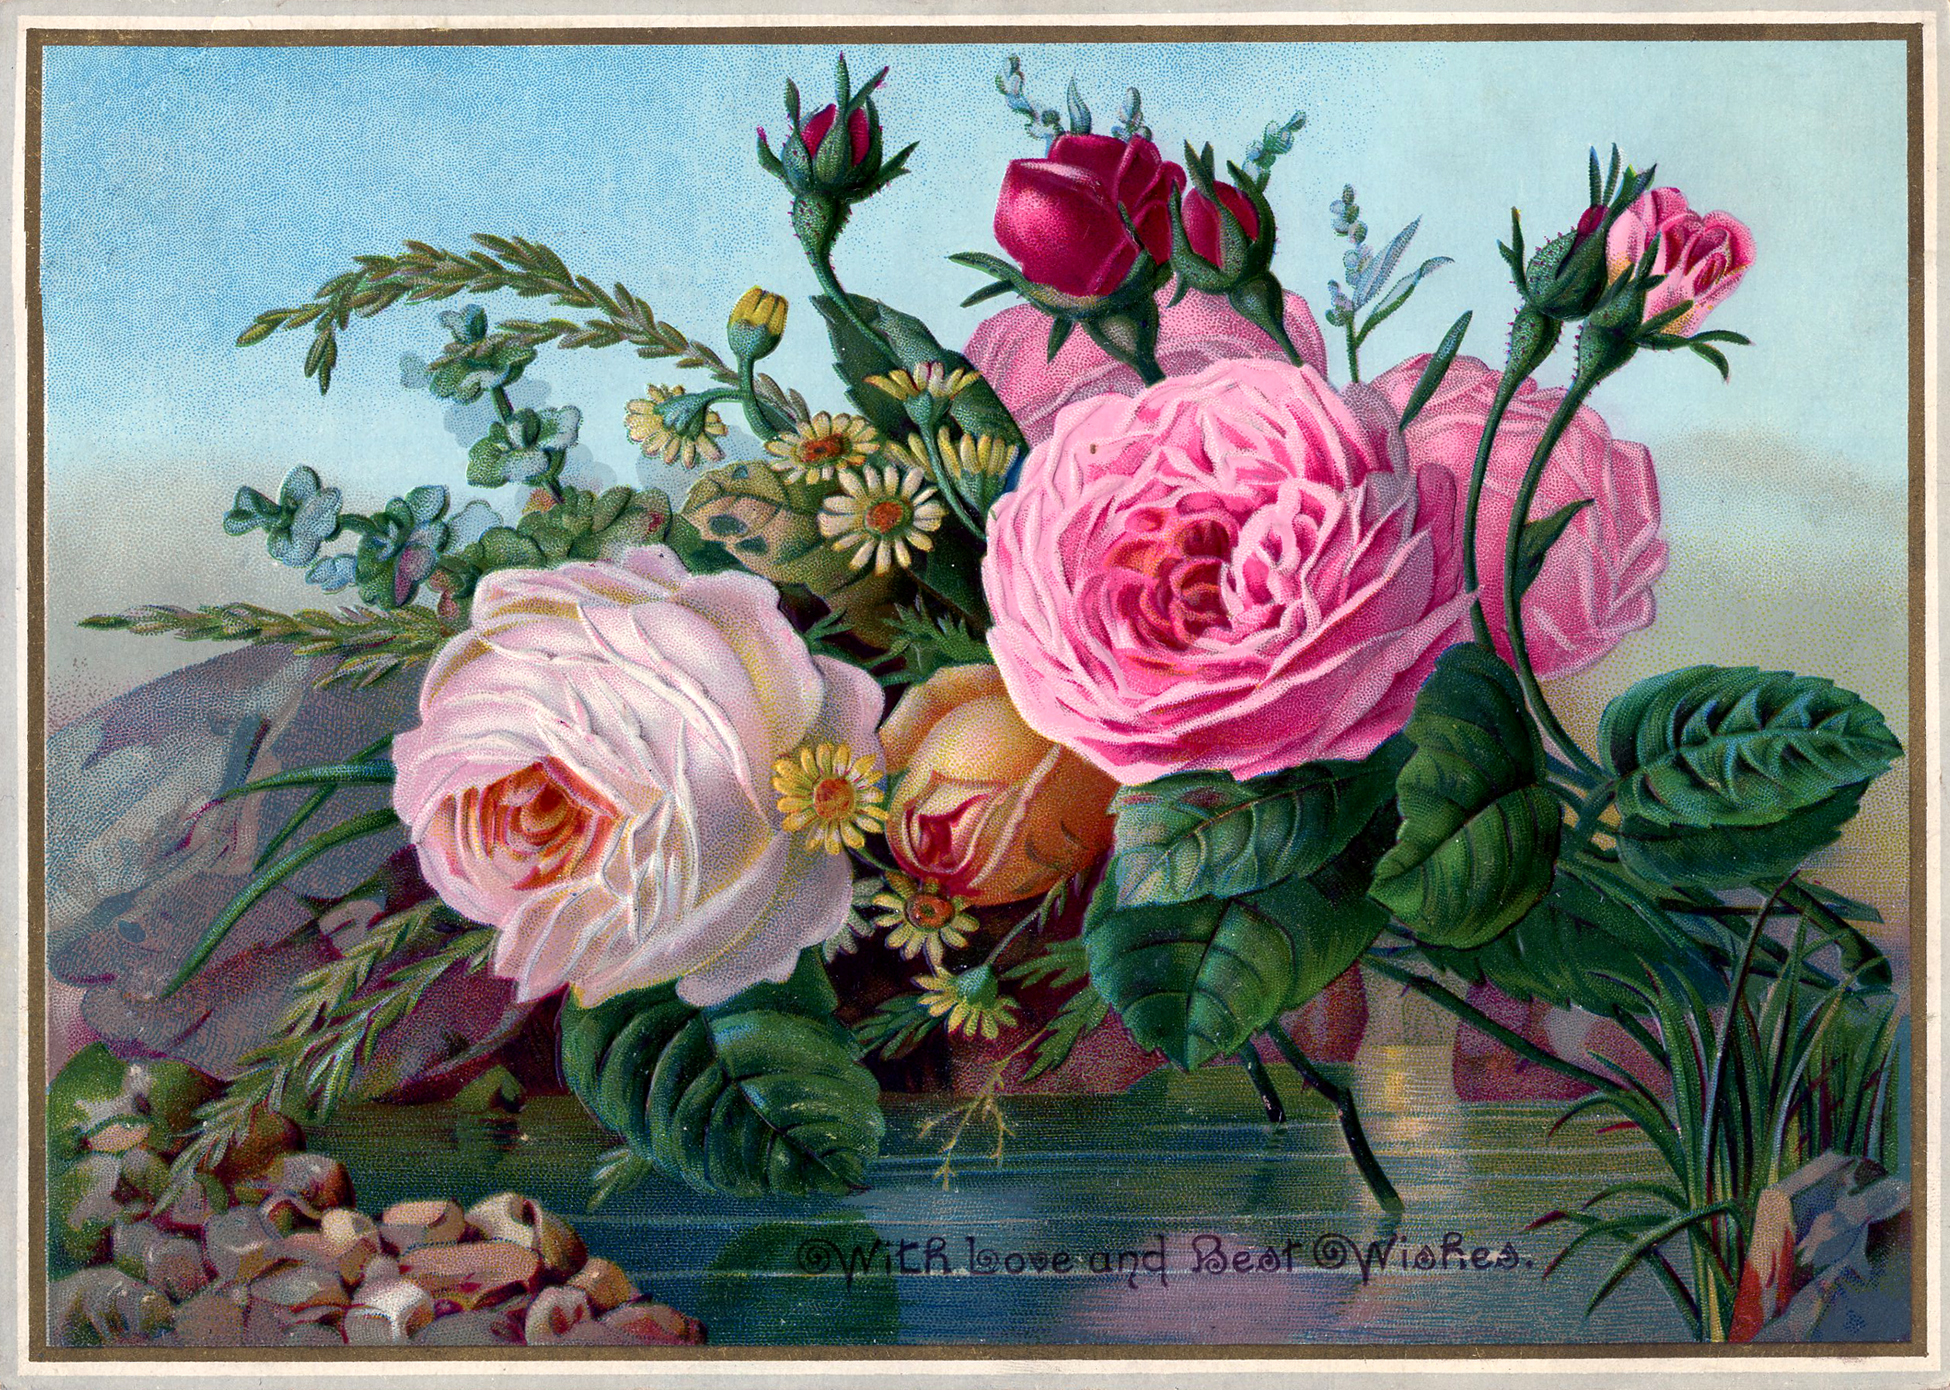 Free Public Domain Vintage Image   Stunning Roses   The Graphics Fairy